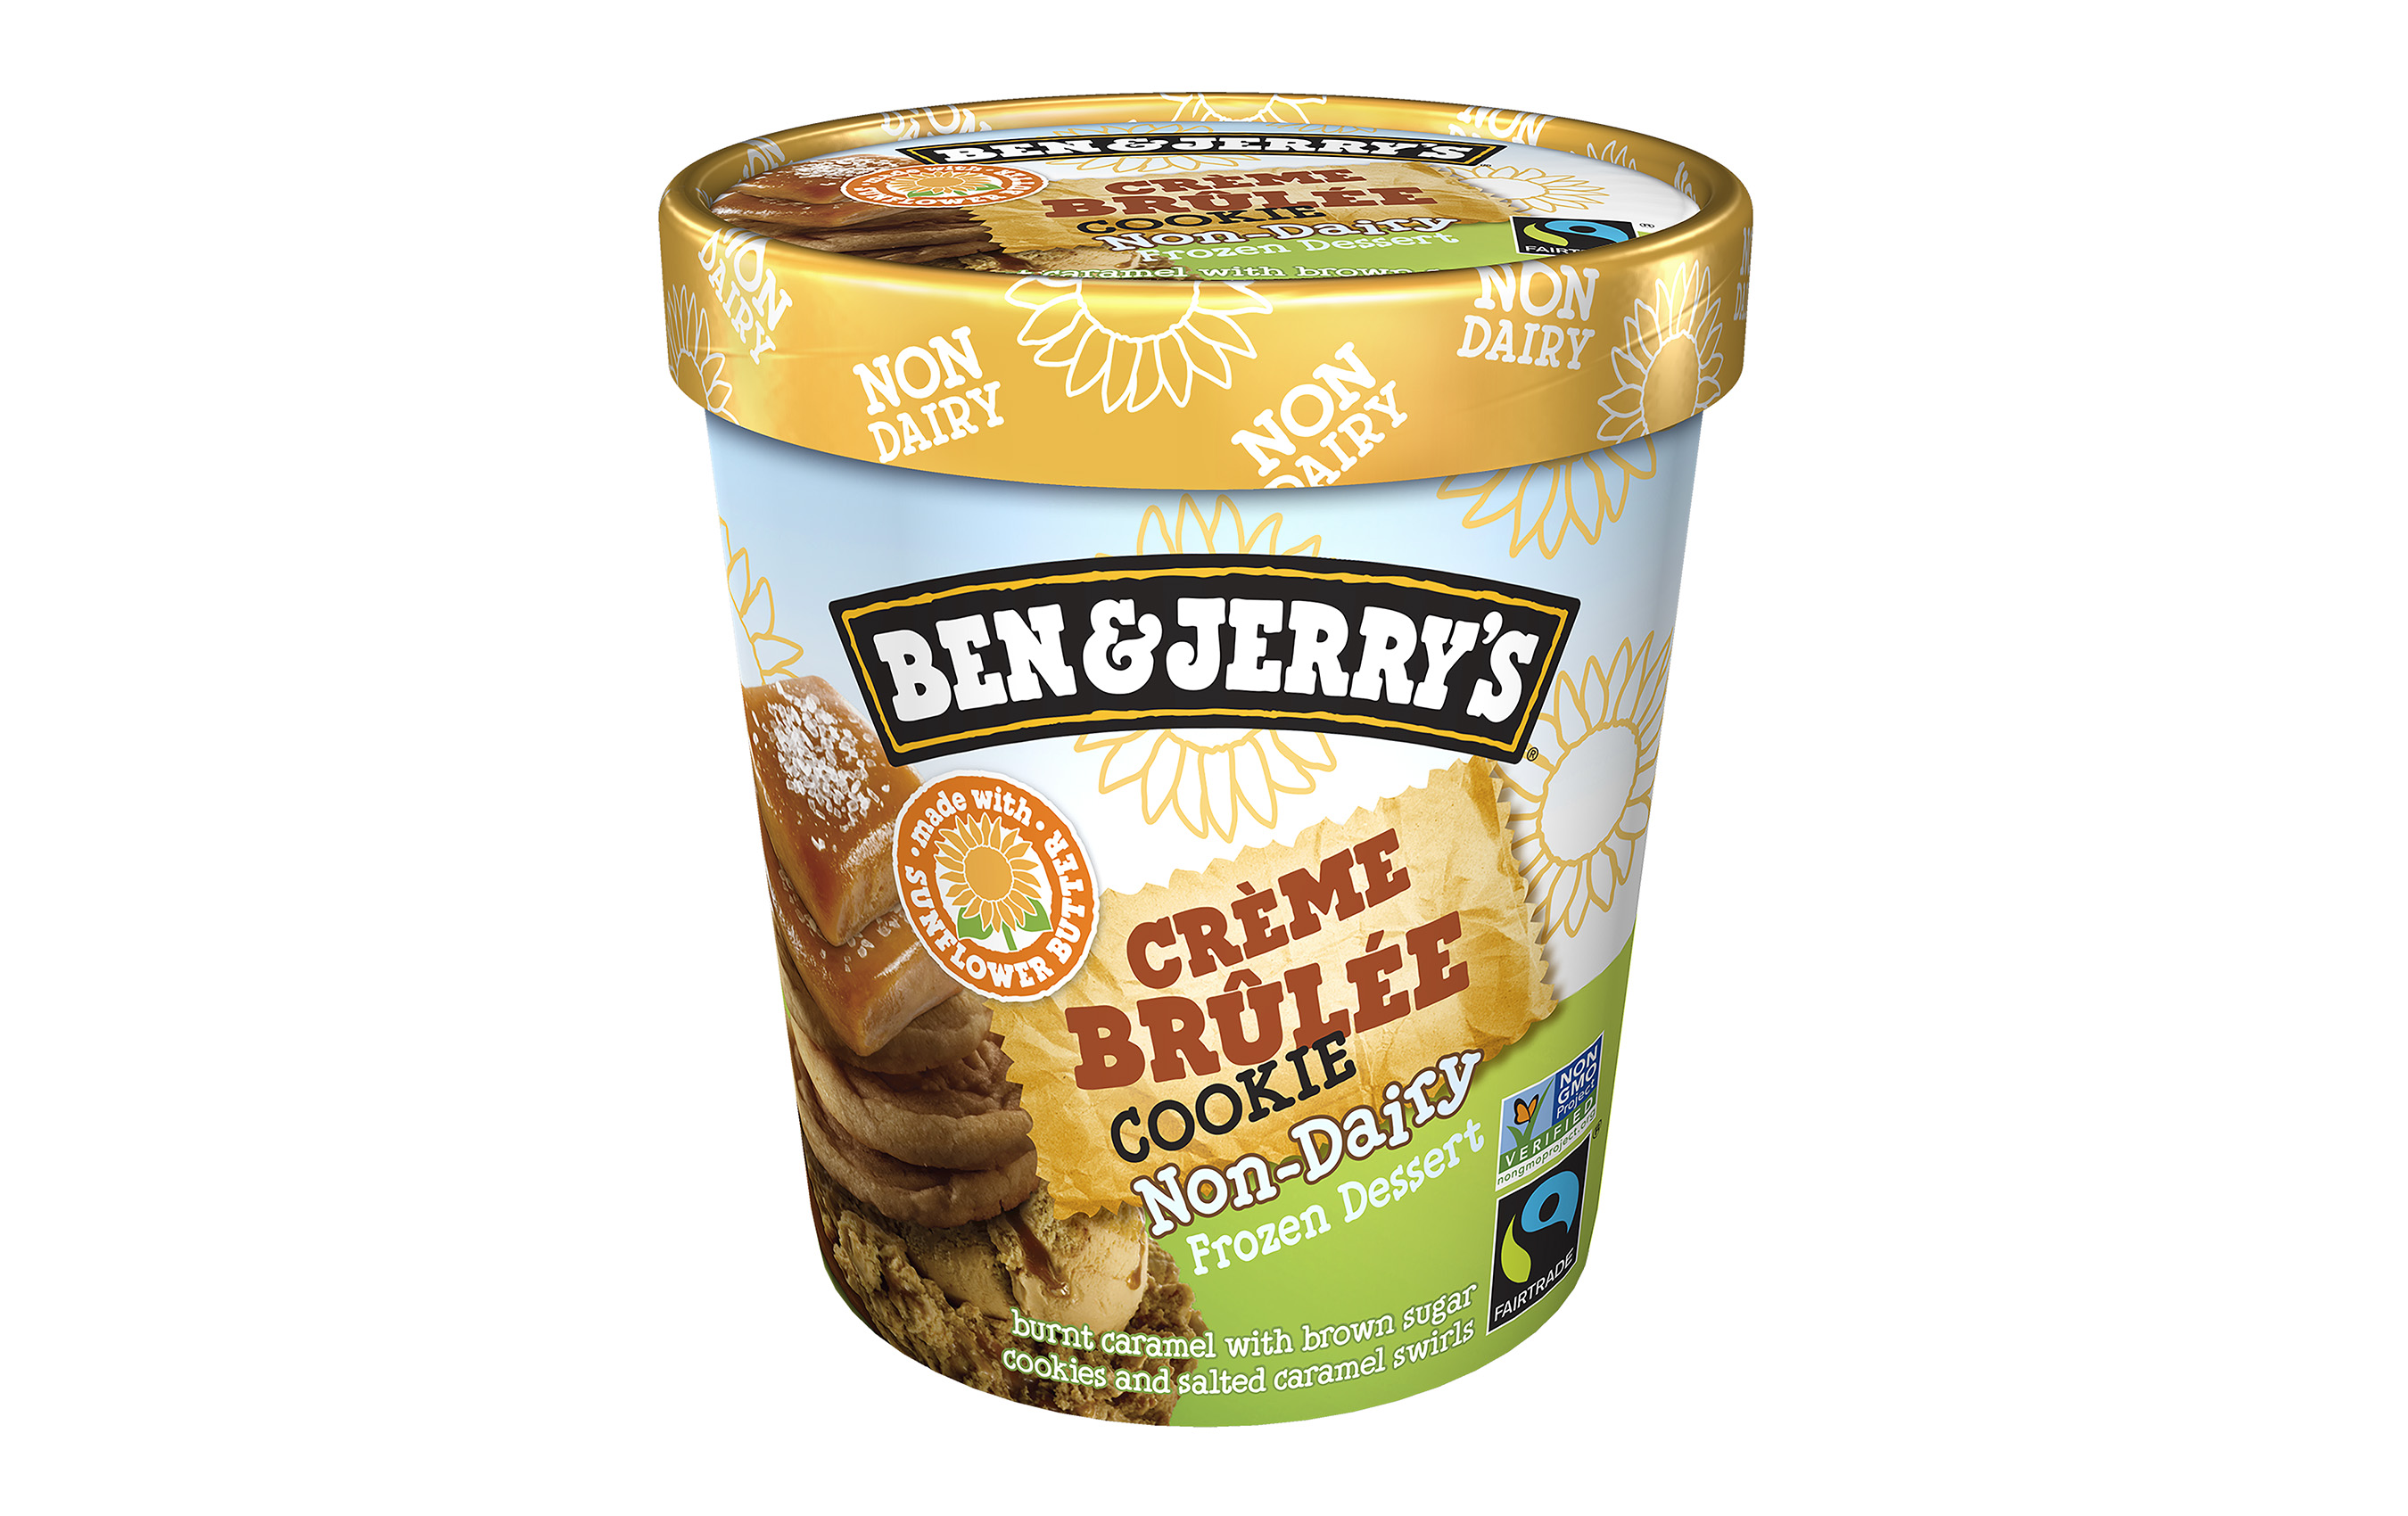 Ben & Jerry's launches sunflower butter based Crème Brûlée Cookie, a burnt caramel non-dairy frozen dessert with brown sugar cookies and salted caramel swirls.